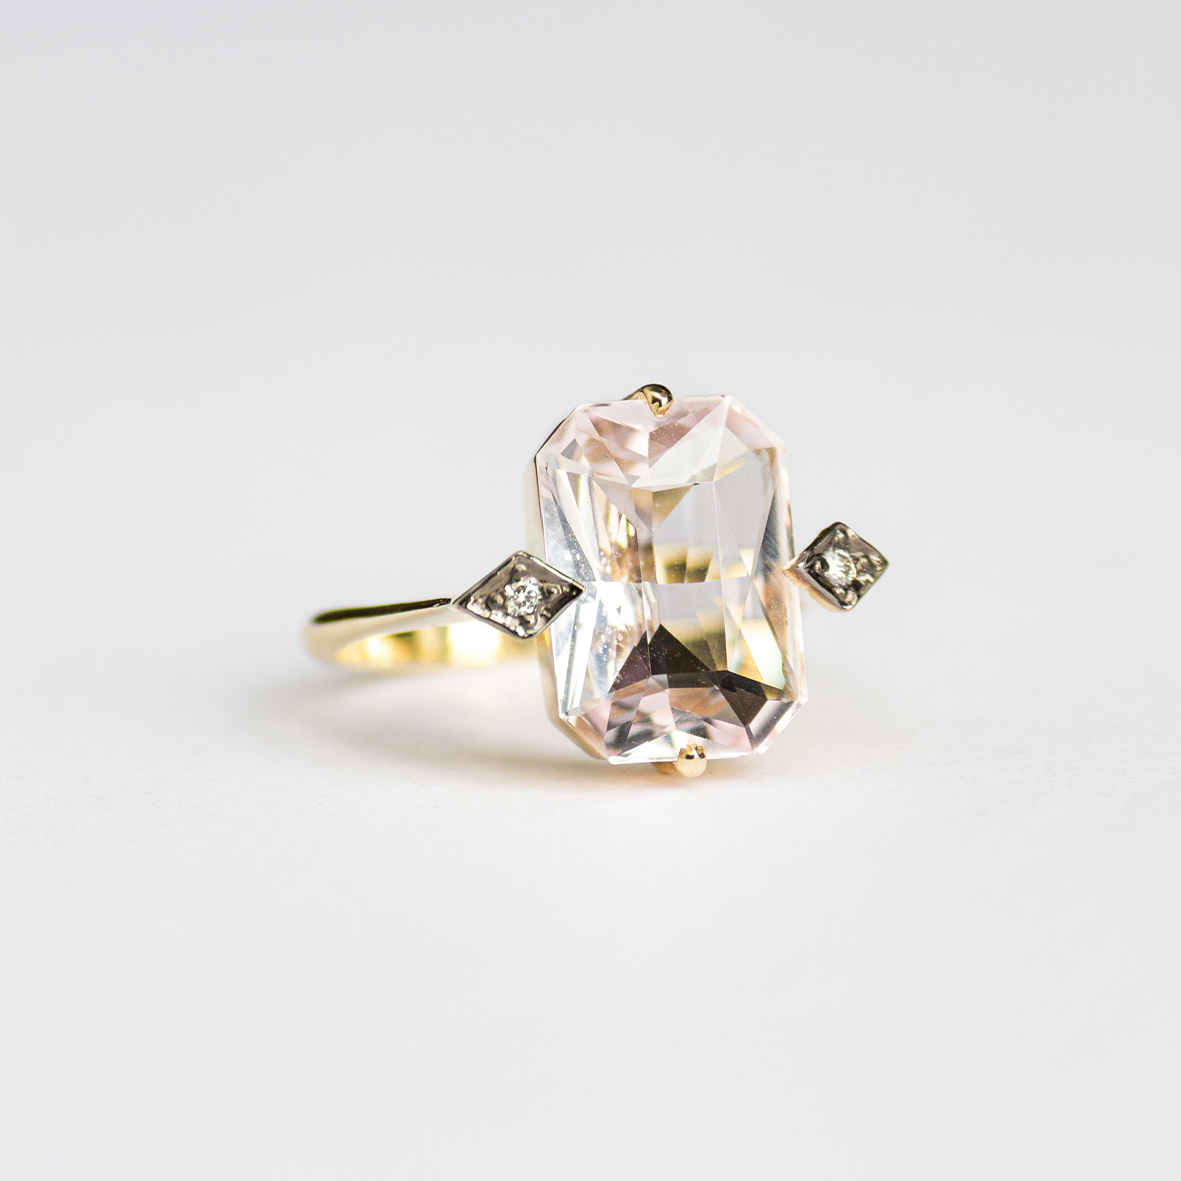 2. OONA_gems of ceylon_ficha1_morganite ring